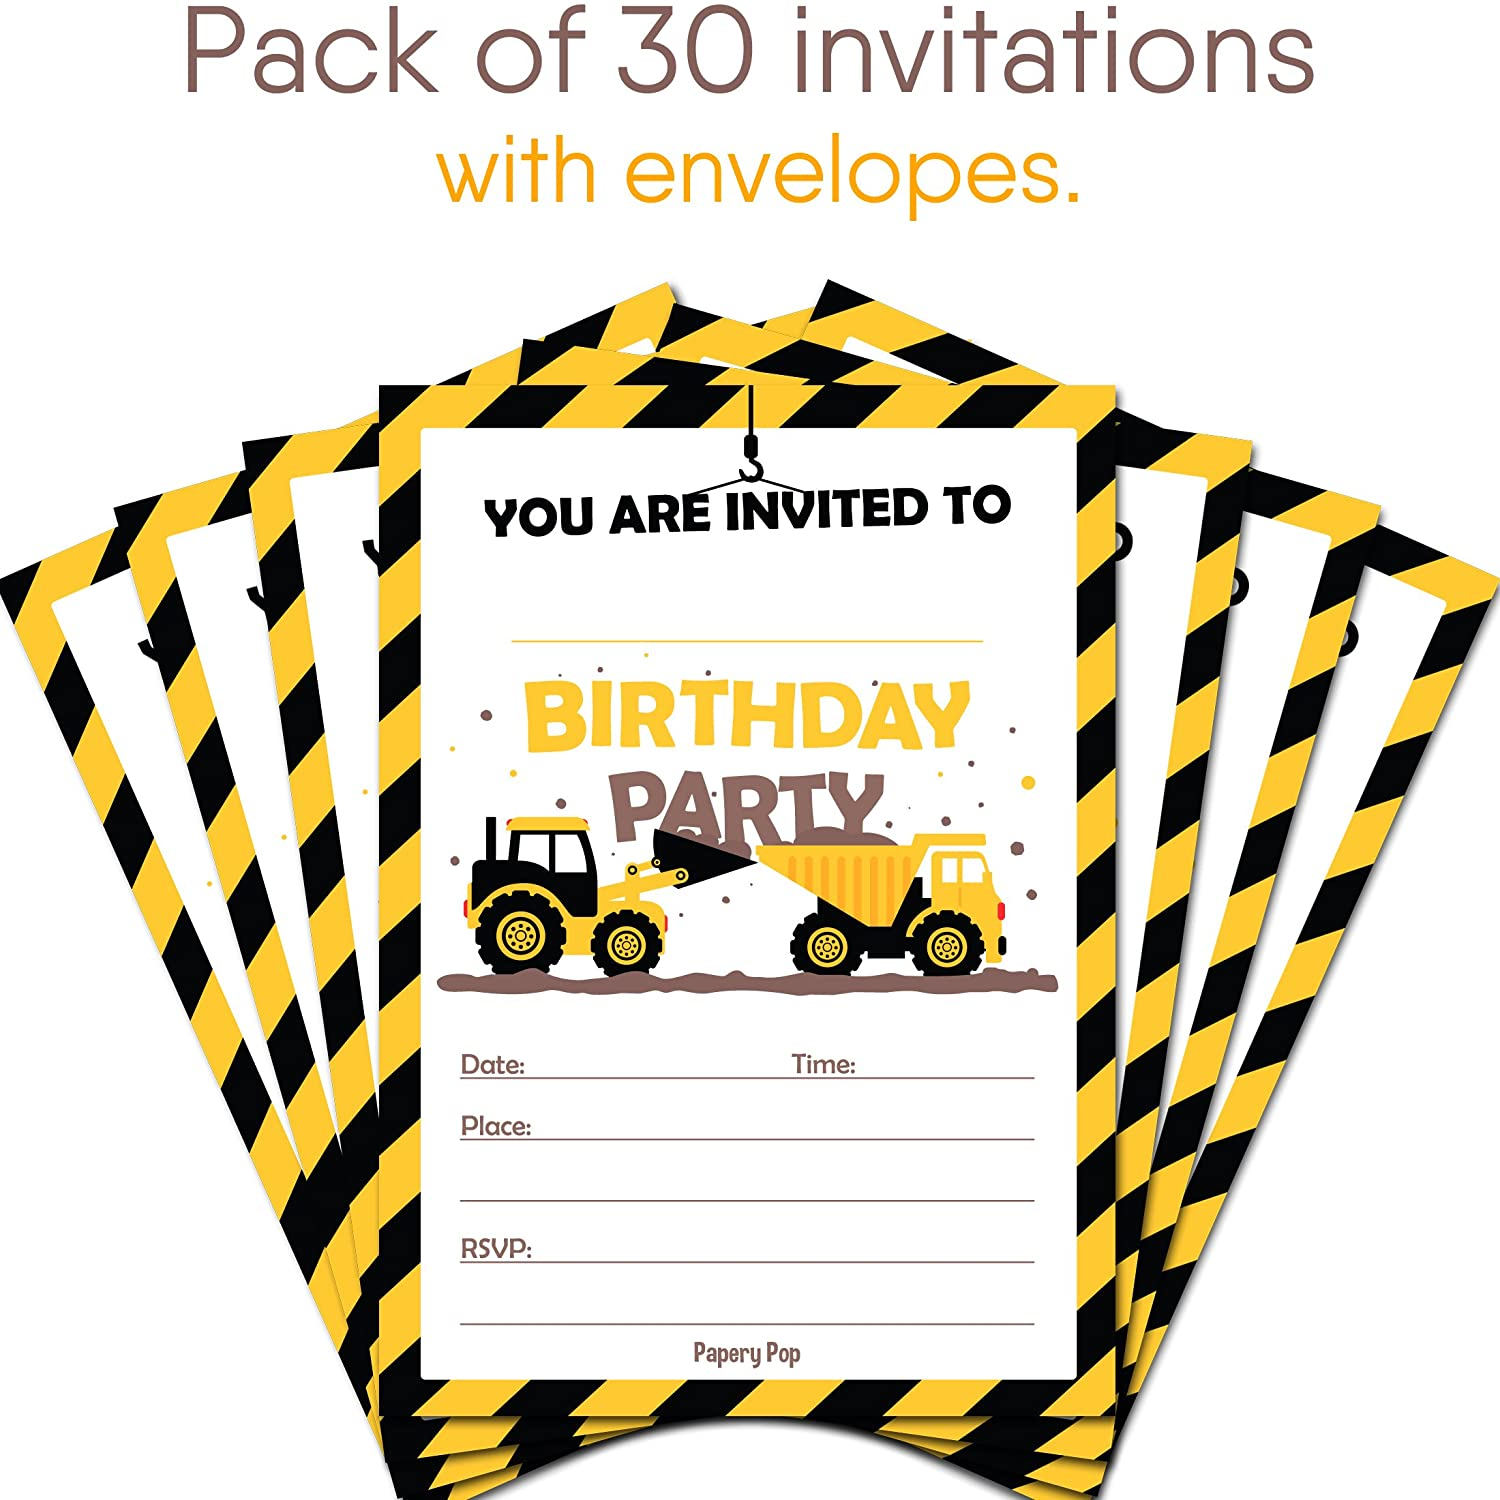 Green Tractor Birthday Party Invitations for Boys - Farm Ranch ...